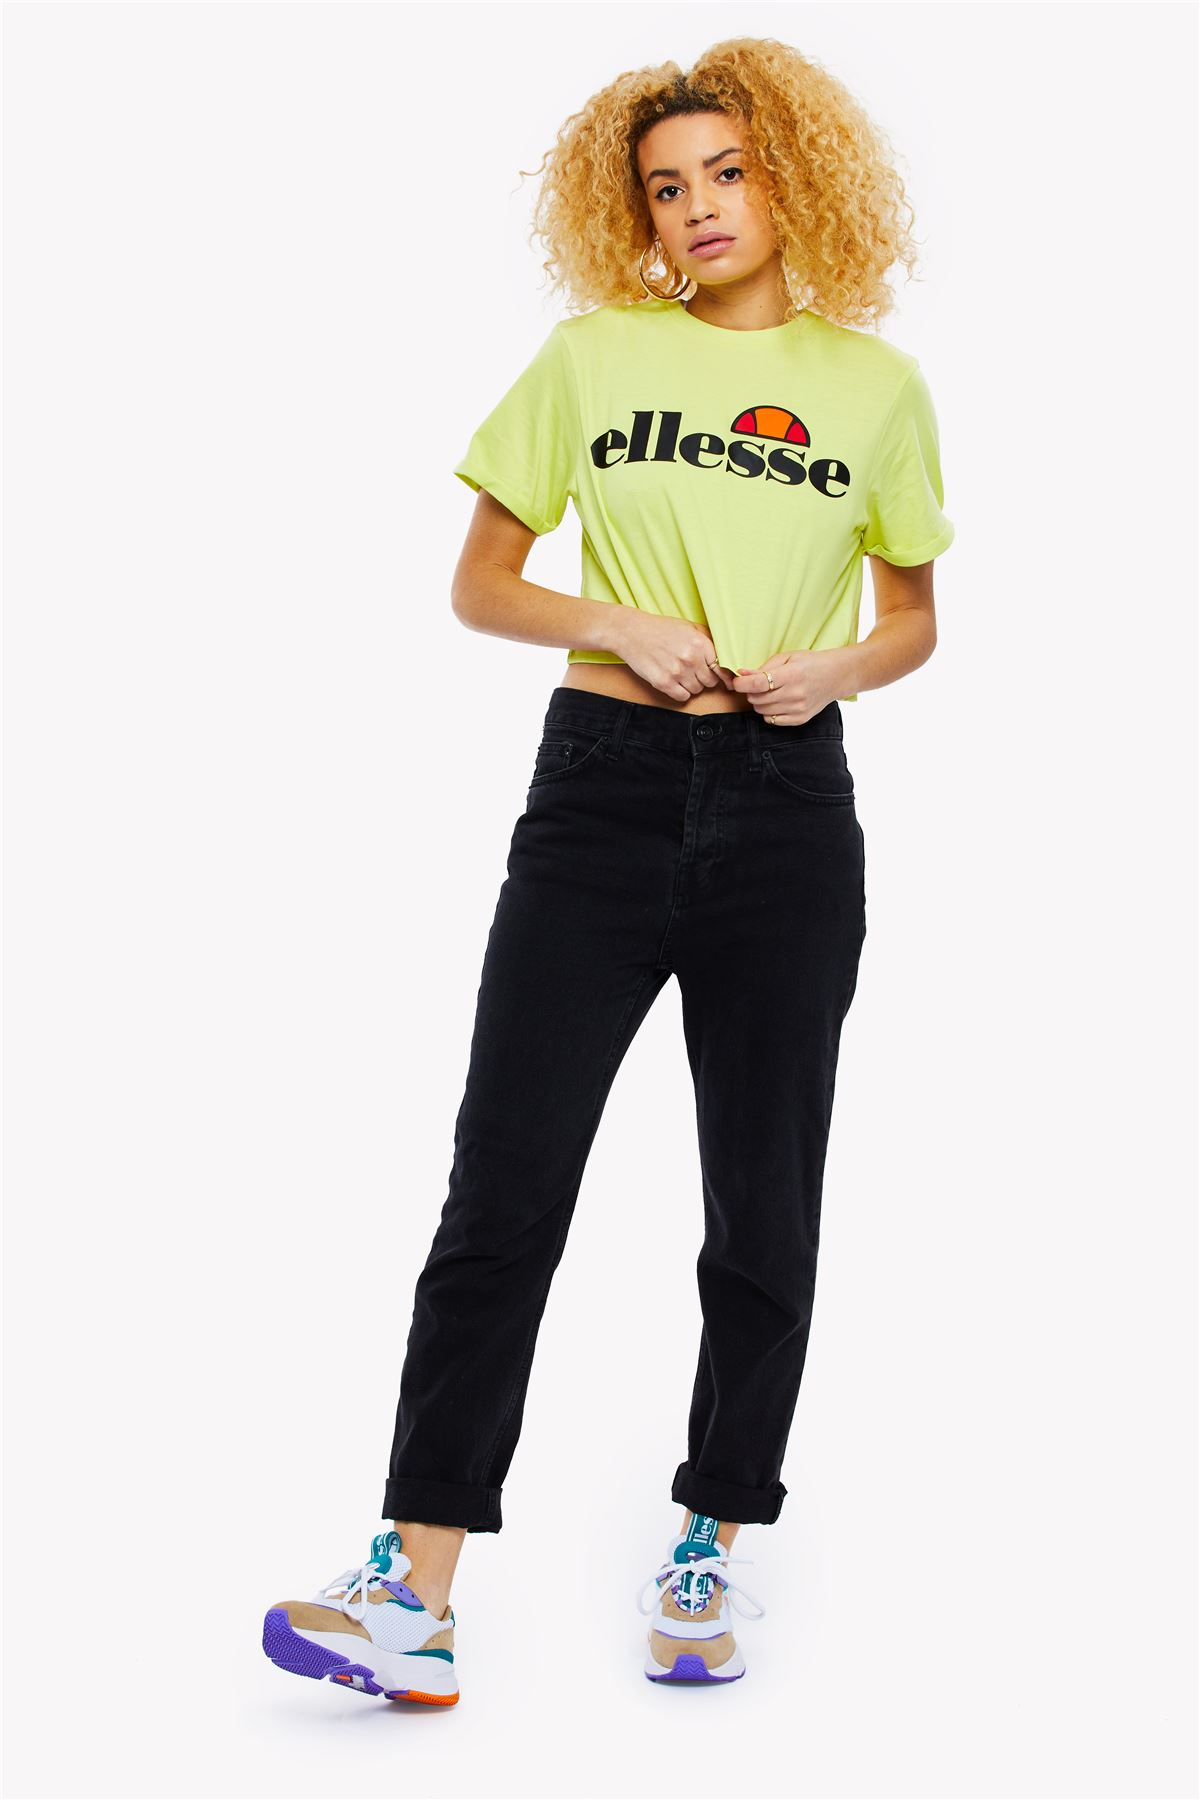 Ellesse-End-of-Line-Clearance-Sale-Bargain-Womens-Tops-T-Shirts-Free-UK-Ship thumbnail 10